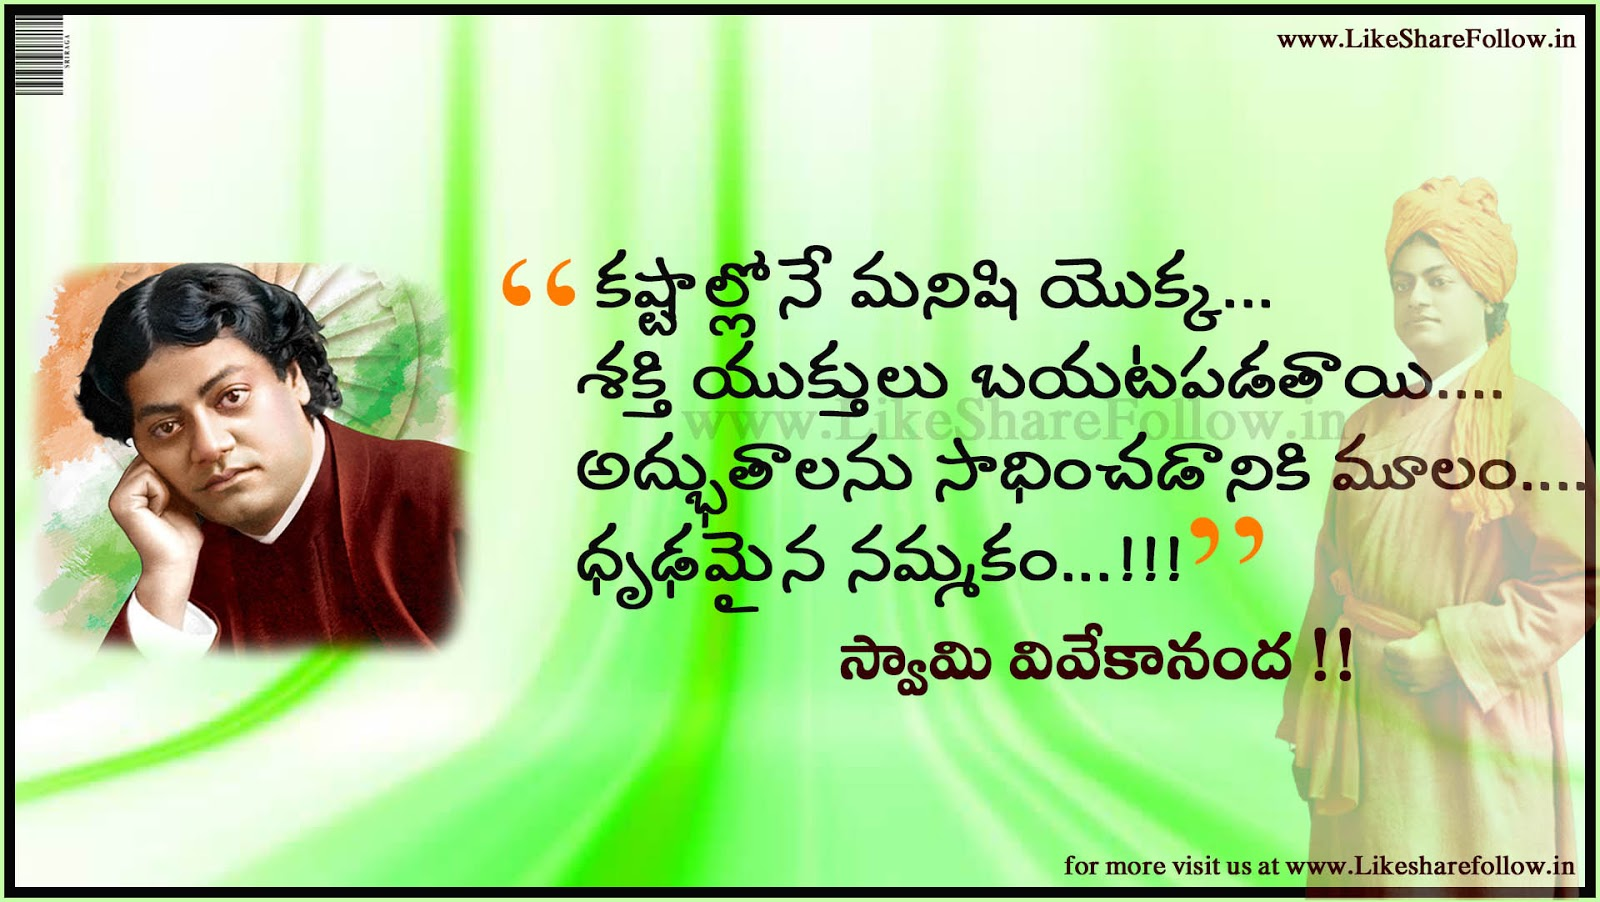 Quotes Vivekananda Swami Vivekananda Telugu Quotes Messages  Like Share Follow